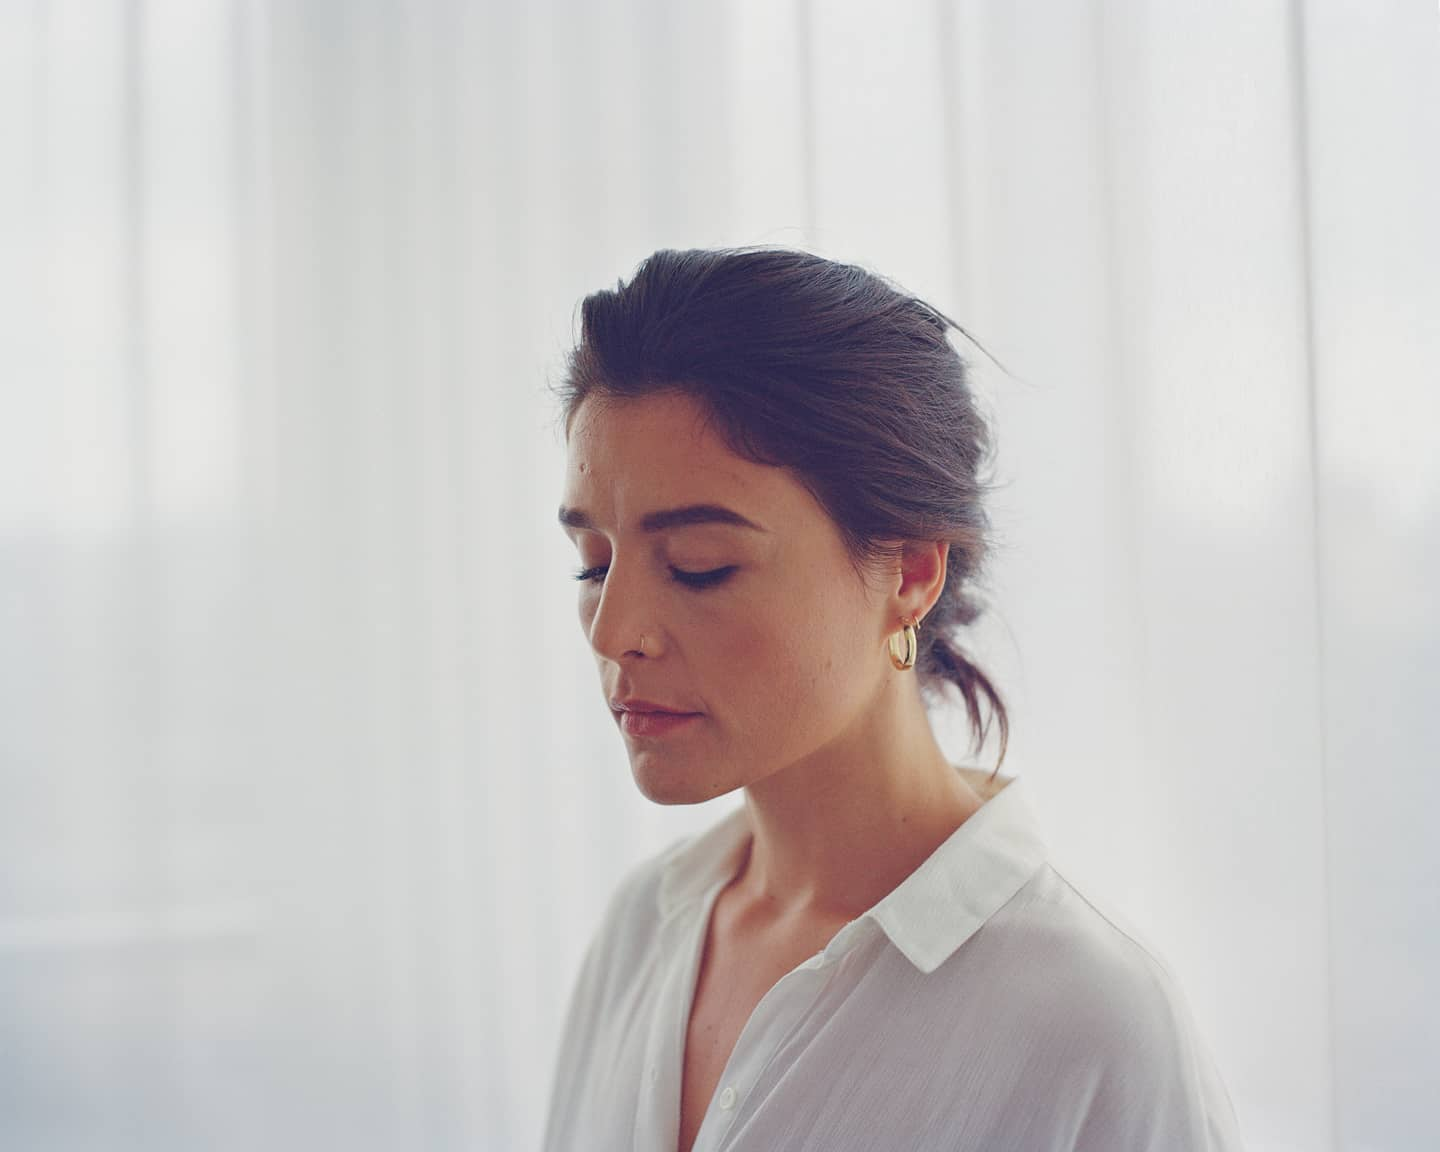 Jessie Ware Tough Love interview The FADER